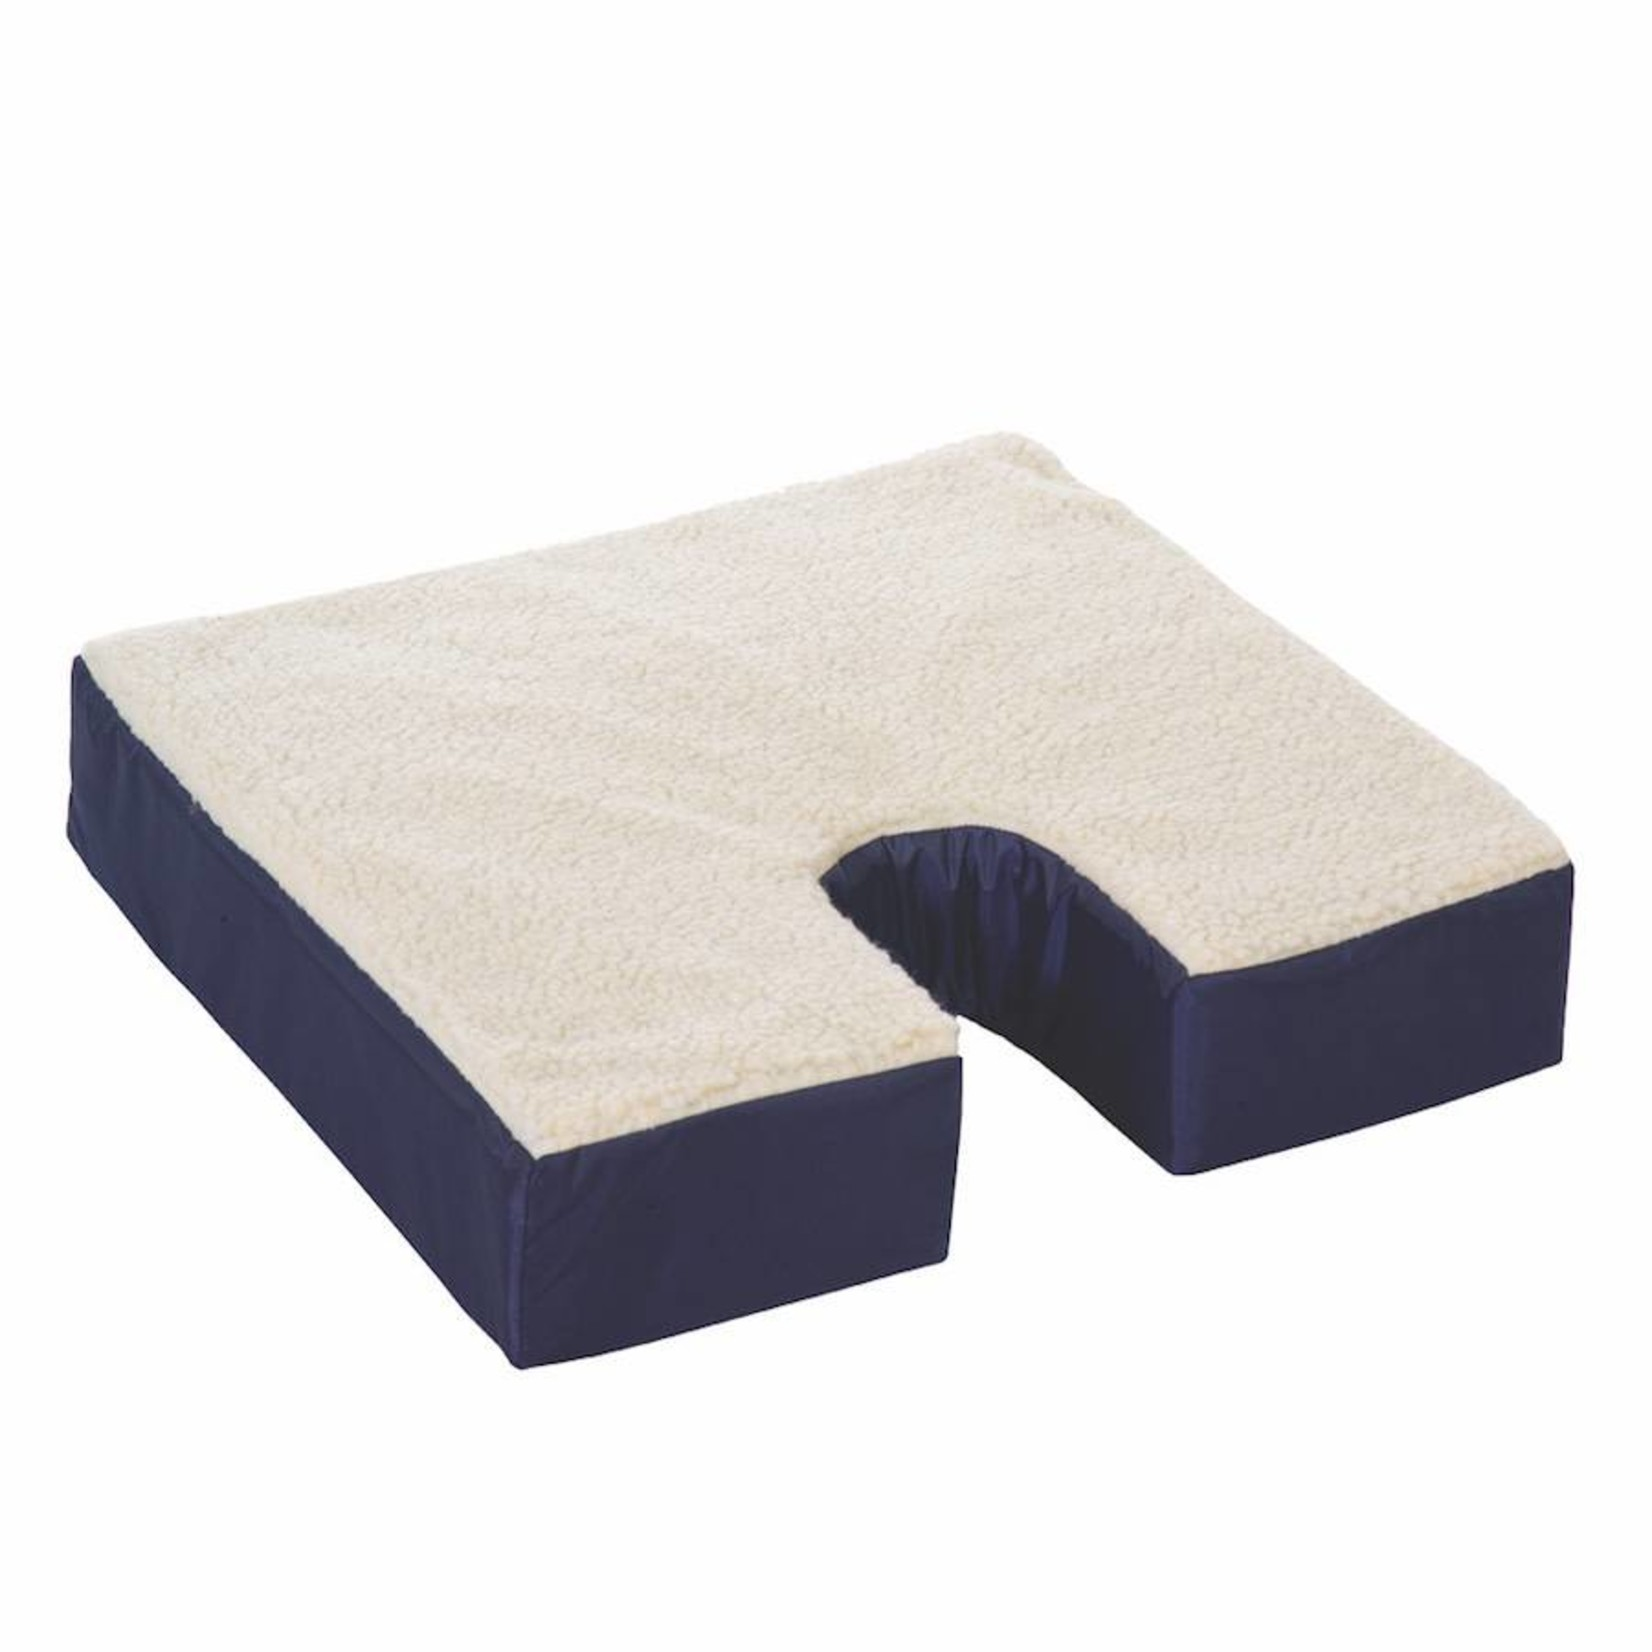 Essential Medical Coccyx Cushion  gel w fleece